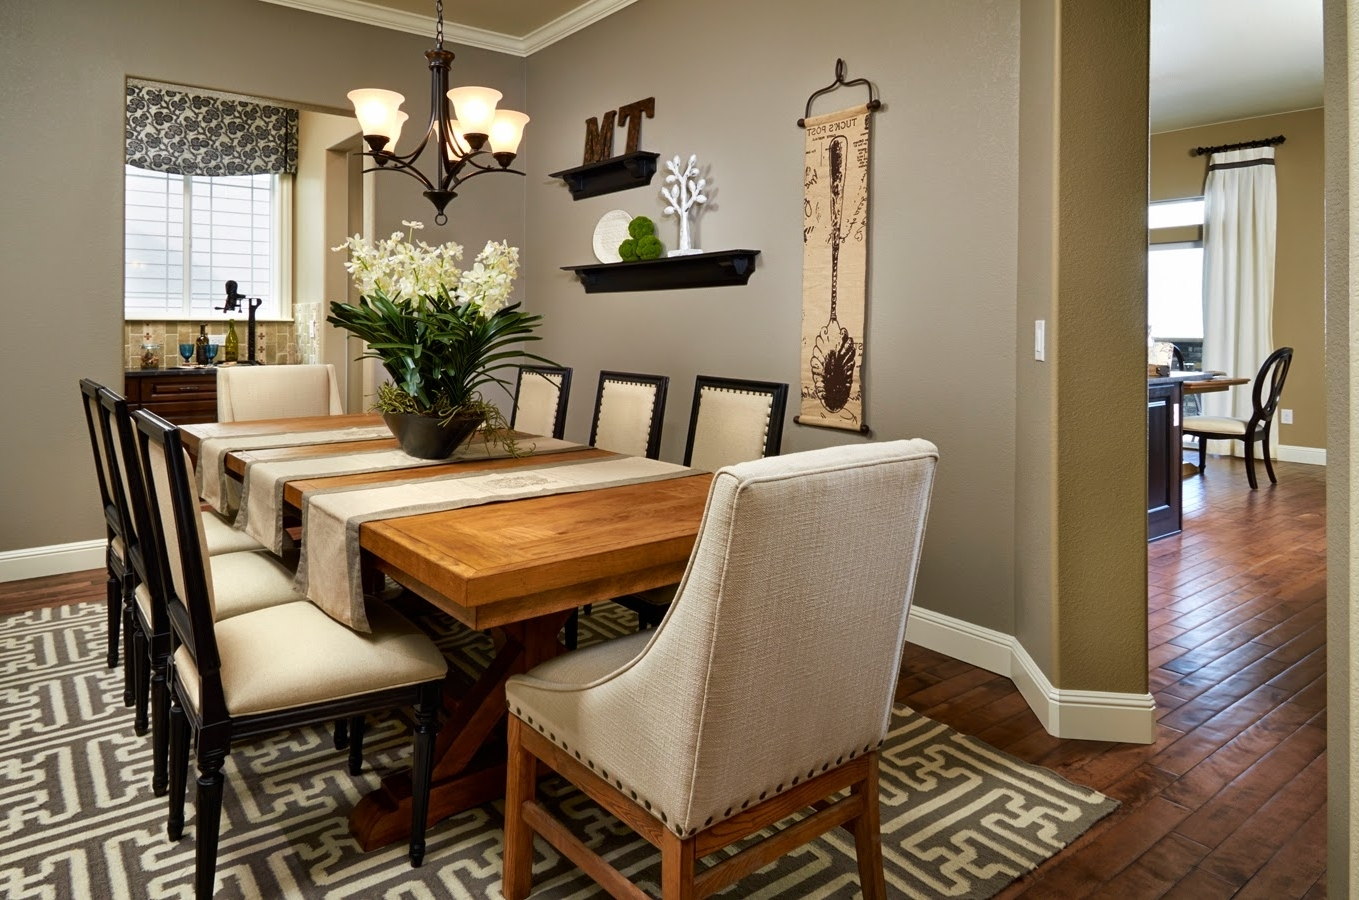 Famous Simple Diy Formal Dining Room Table Centerpieces With Flowers Pertaining To Formal Dining Room Wall Art (View 4 of 15)